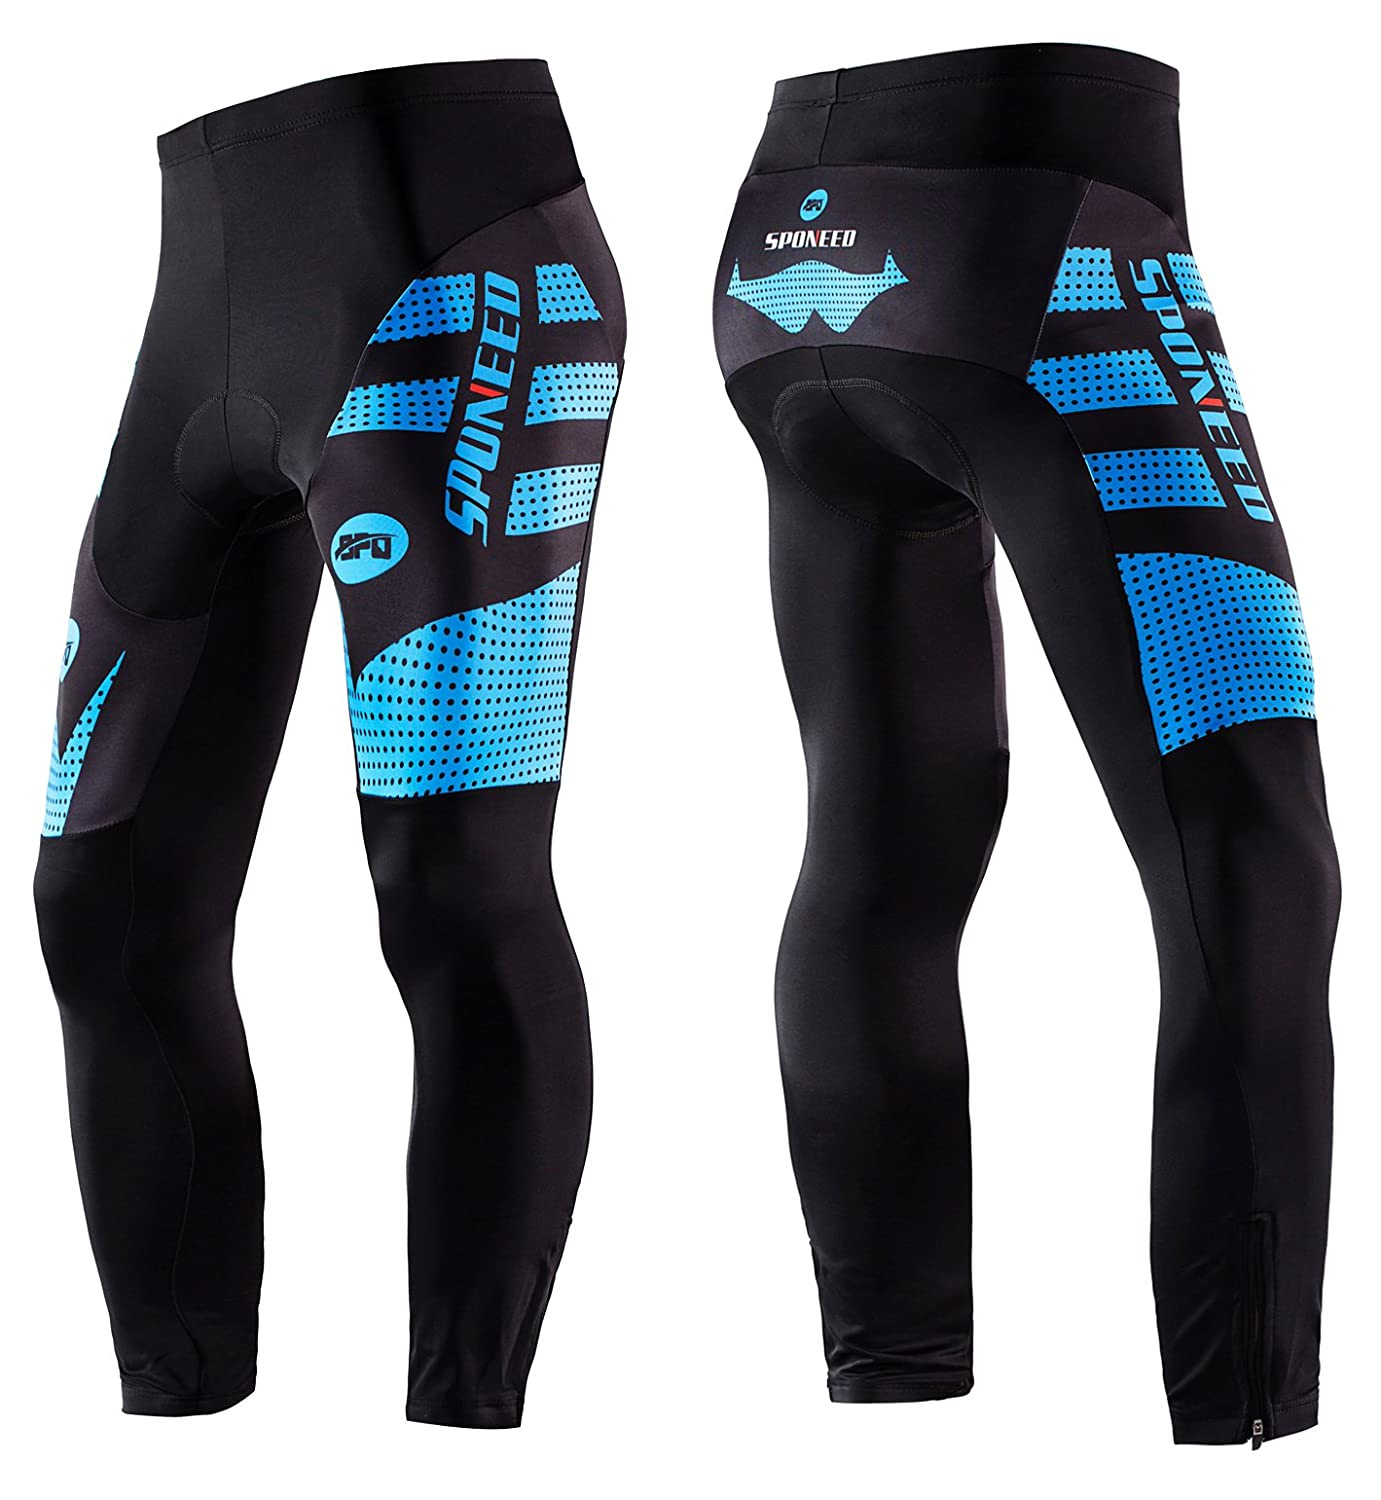 Amazon.com   sponeed Men s Bicycle Pants 4D Padded Road Cycling Tights MTB  Leggings Outdoor Cyclist Riding Bike Wear   Sports   Outdoors 85241c12b